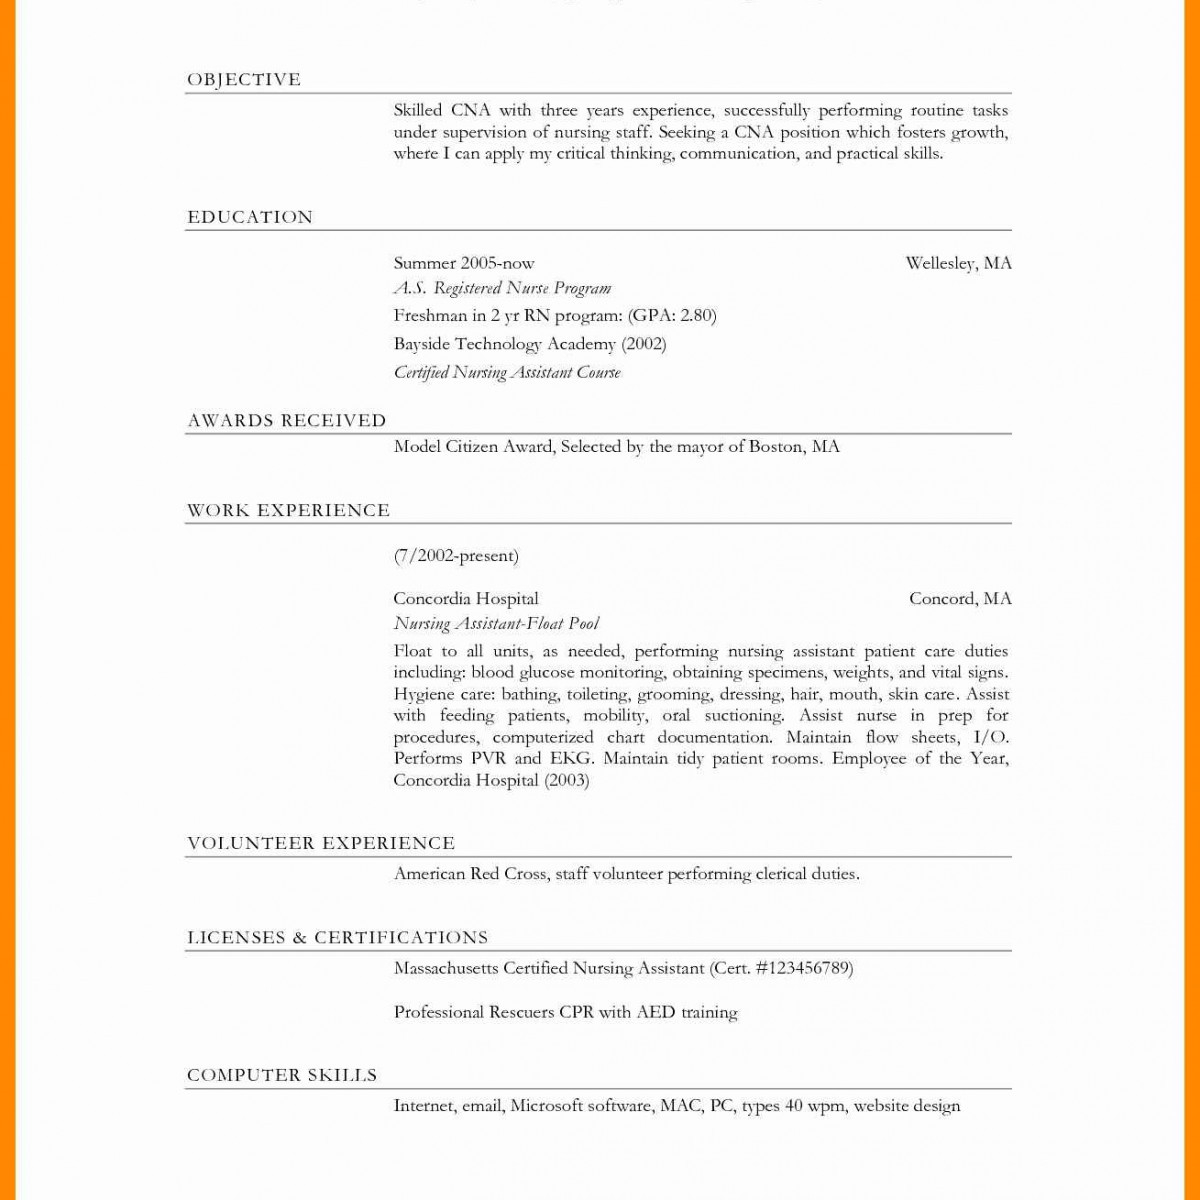 outdoor resume template Collection-Python Resume Charming Outdoor Resume Template Elegant Resume Outline Examples Unique Od 7-k